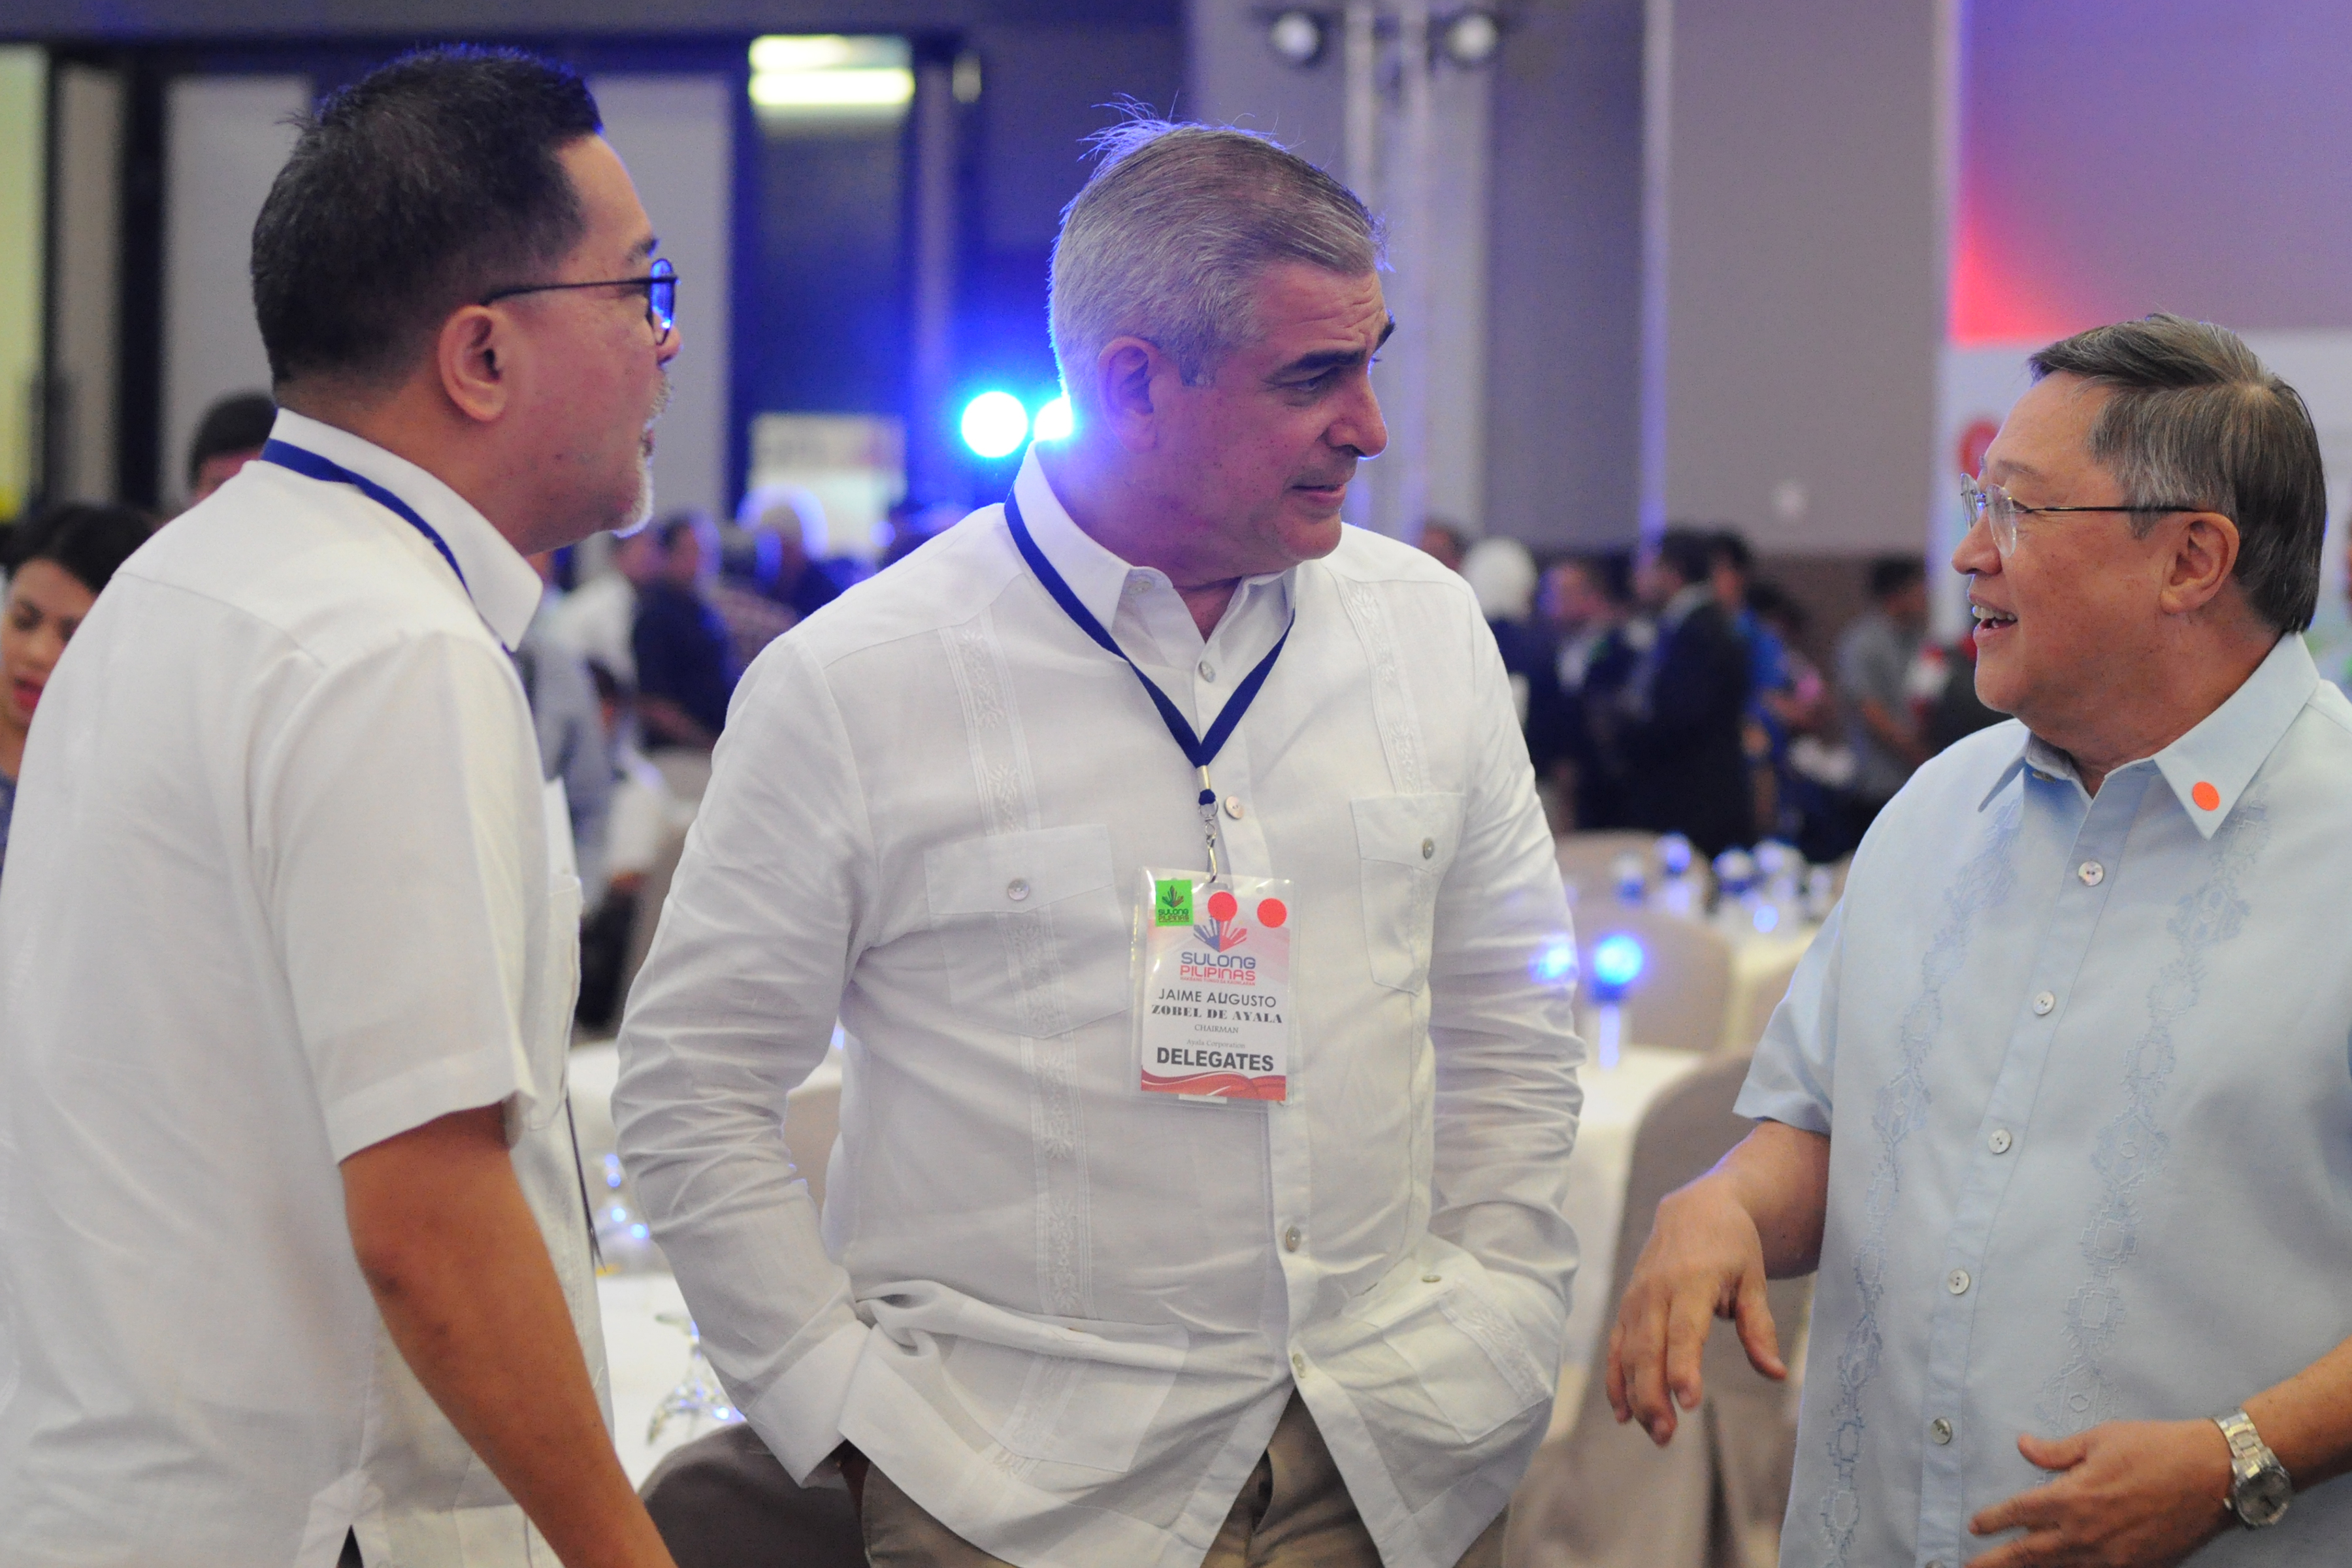 'BEST MINDS IN BUSINESS.' Incoming Finance Secretary Sonny Dominguez chats with Ayala Corporation CEO Jaime Augusto Zobel De Ayala during the 'Sulong Pilipinas' forum. Photo from Sulong Pilipinas